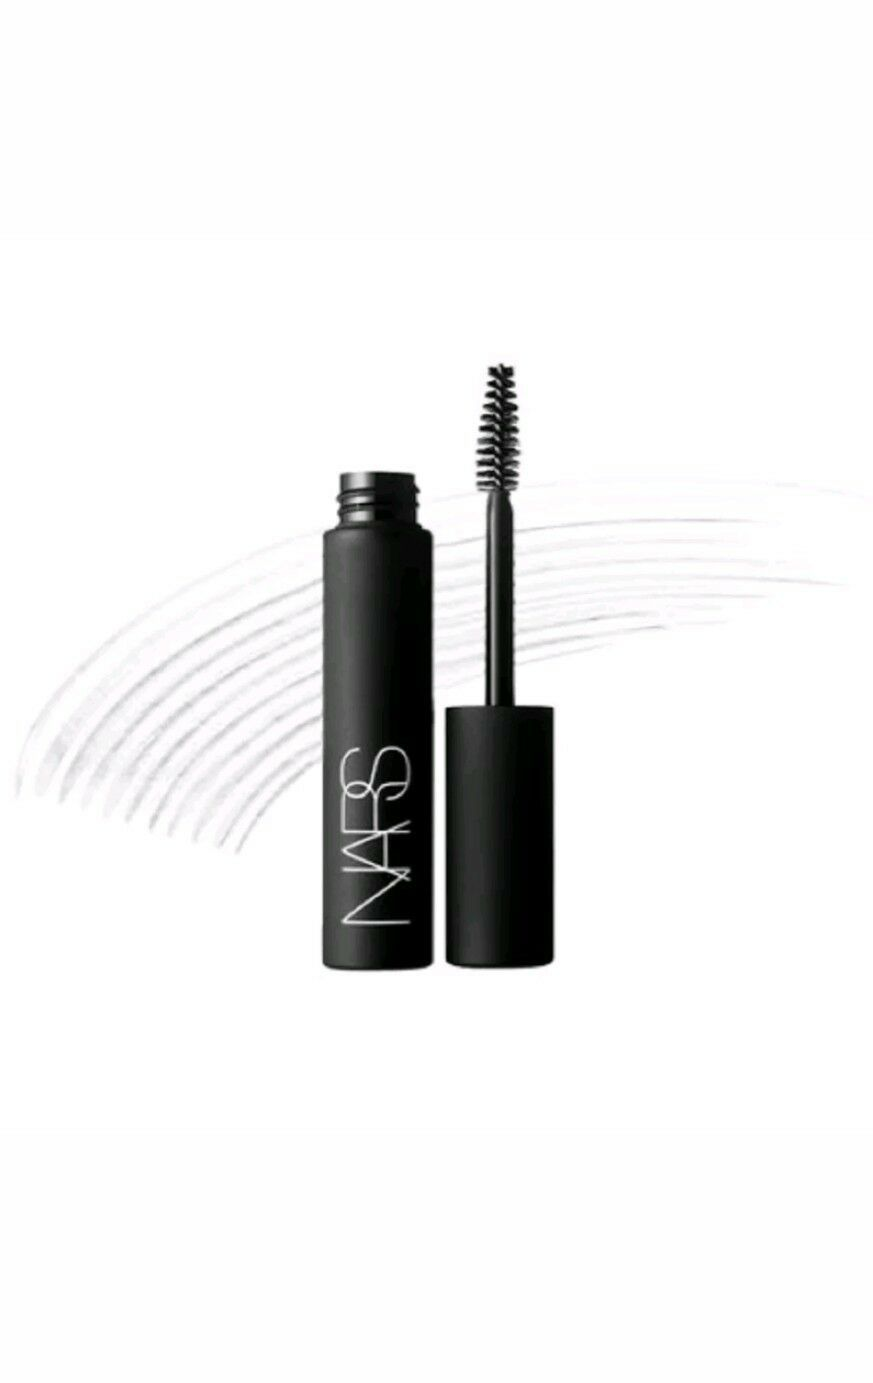 Nars Brow Gel Oural 1153 0.24oz New Boxed - $18.80